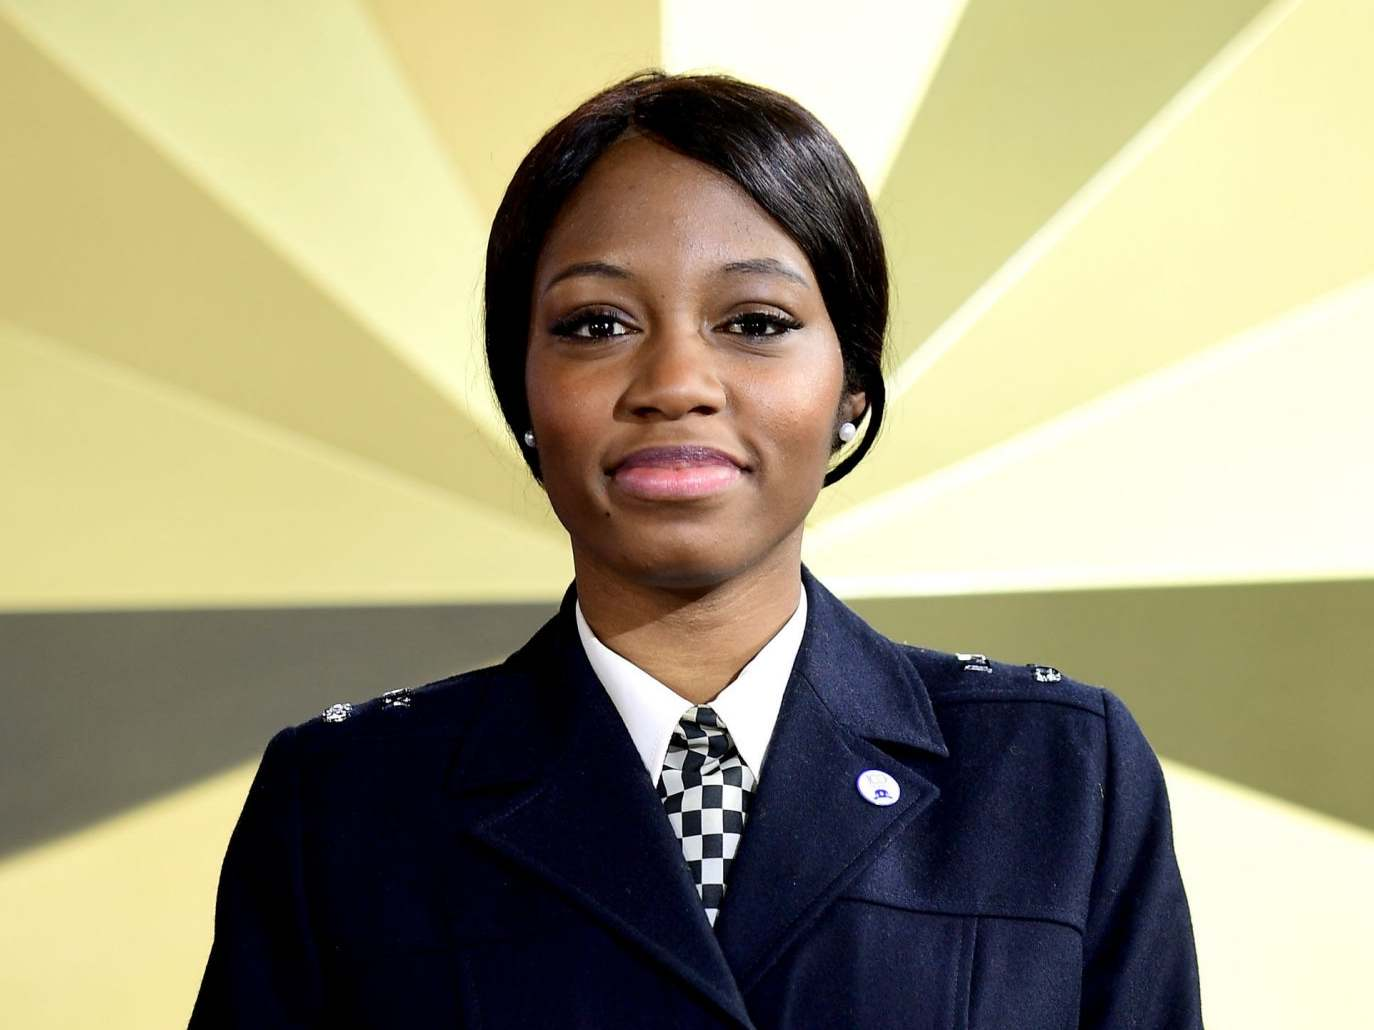 Met Police officer on Big Brother in Nigeria 'without permission', f…